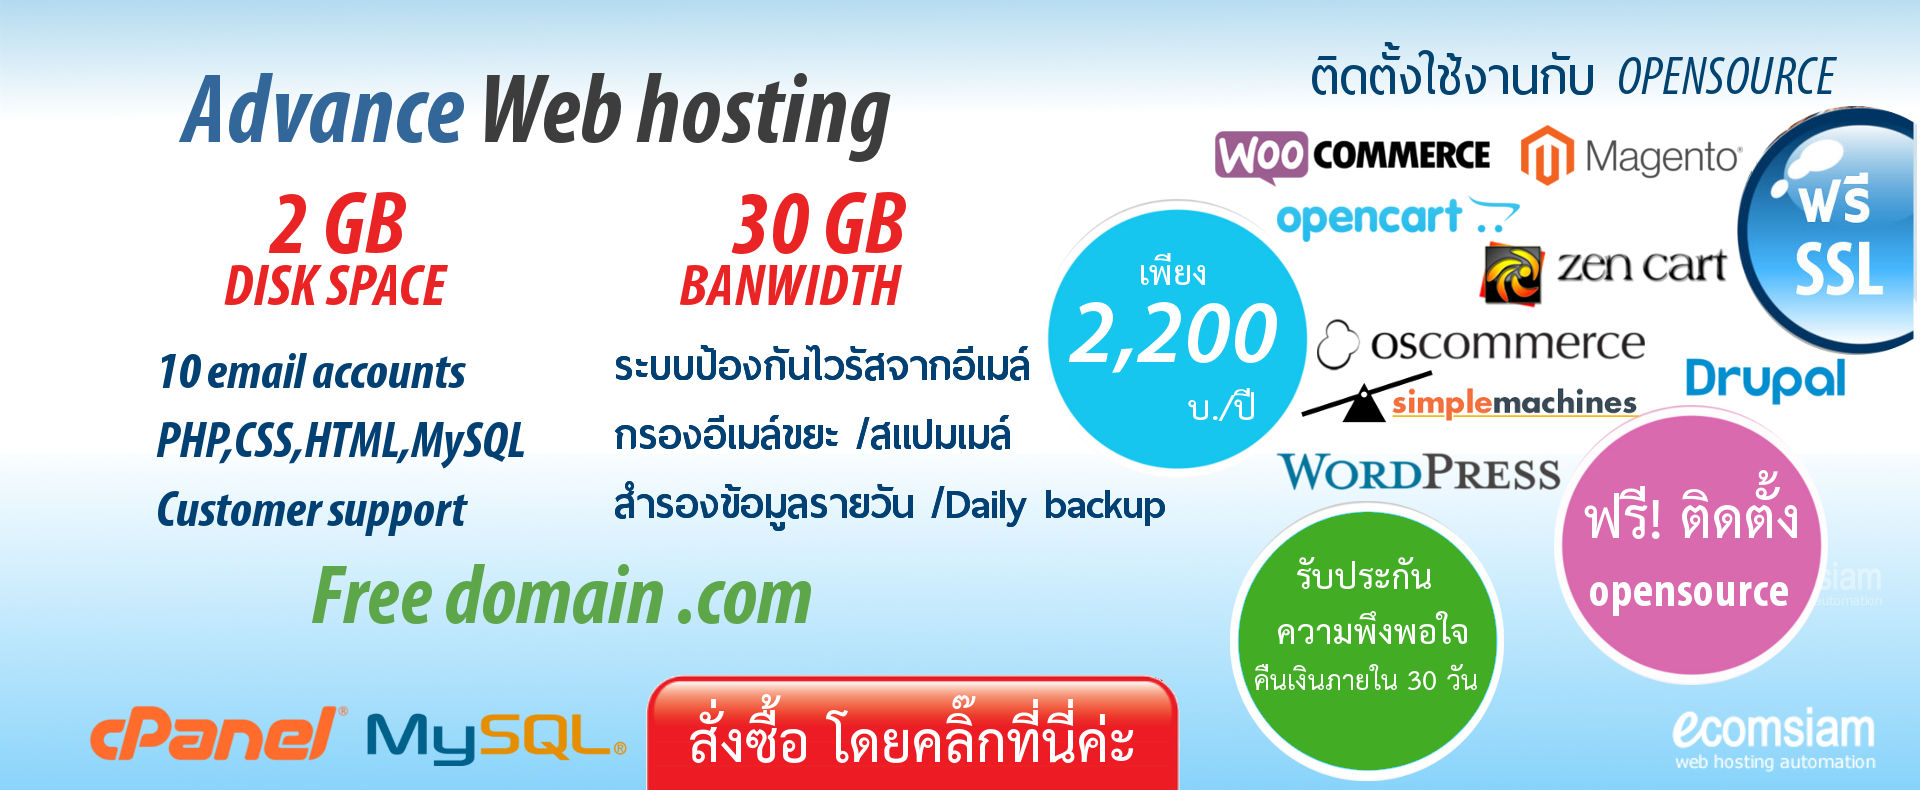 Advance hosting thai ไทย